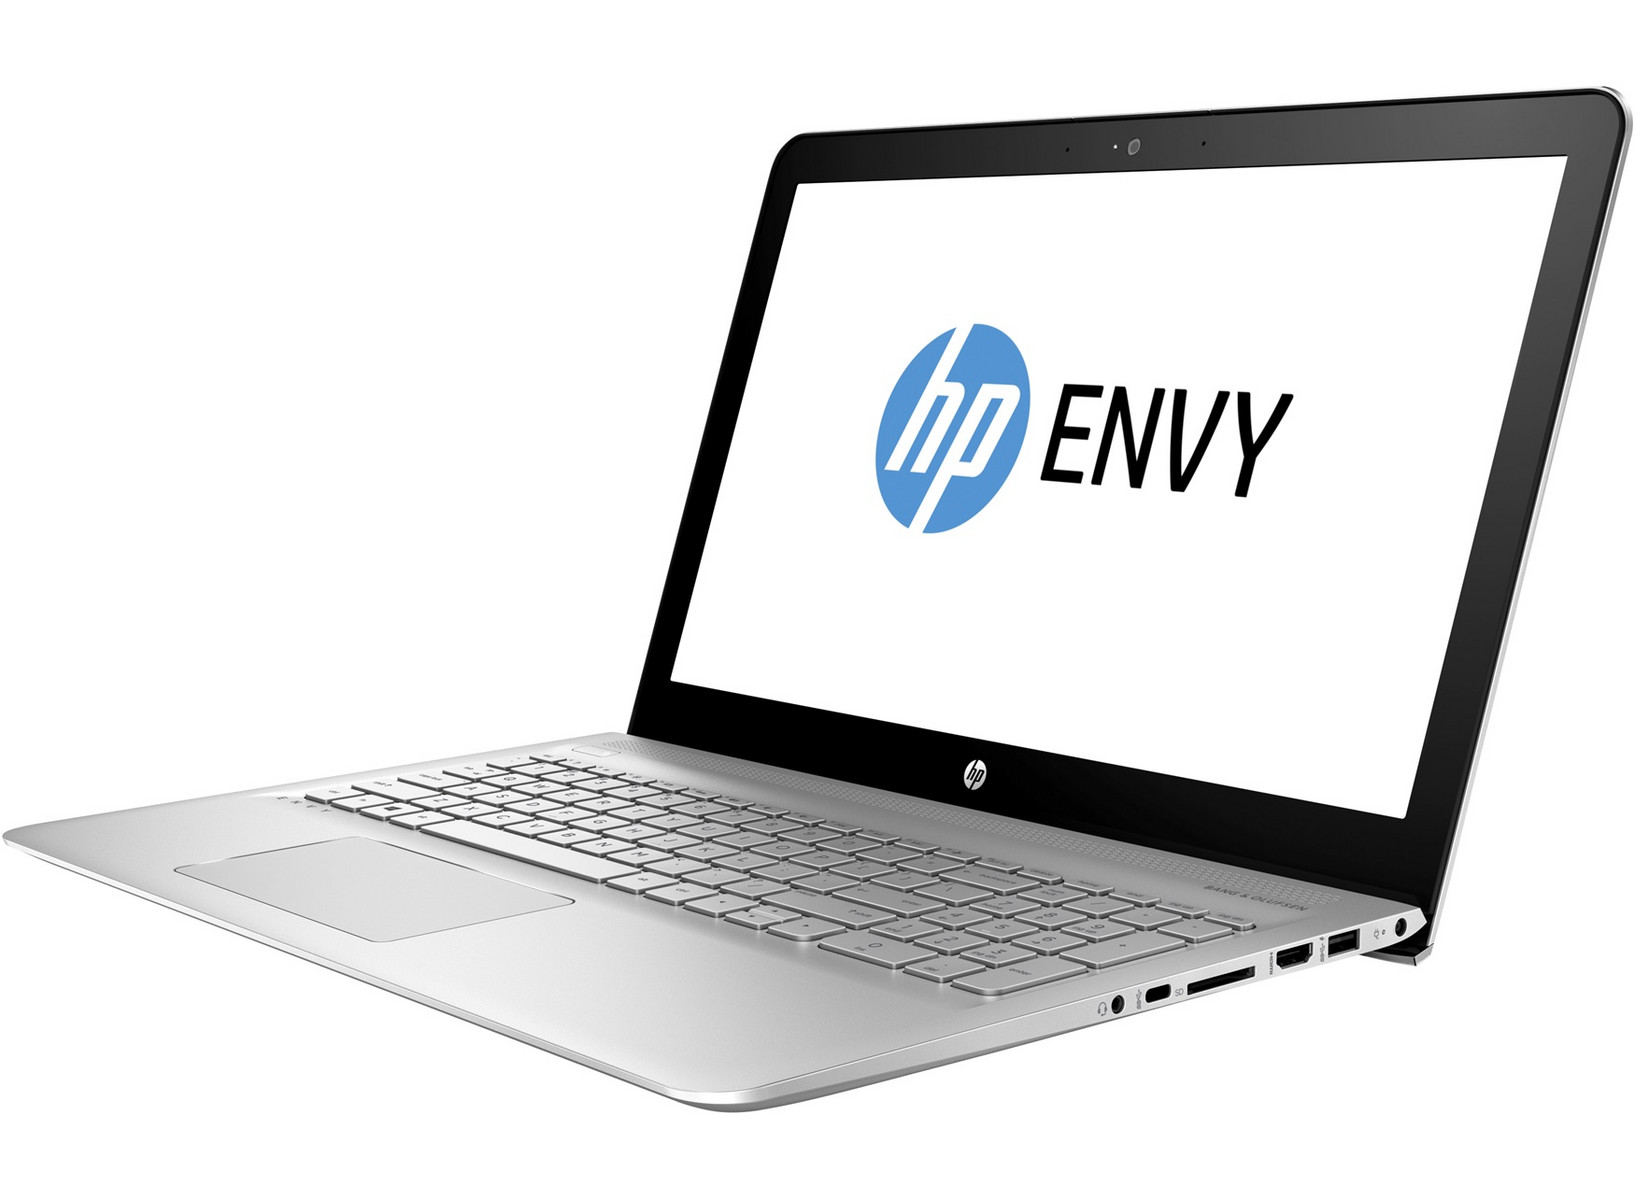 HP Envy 15 as006ng